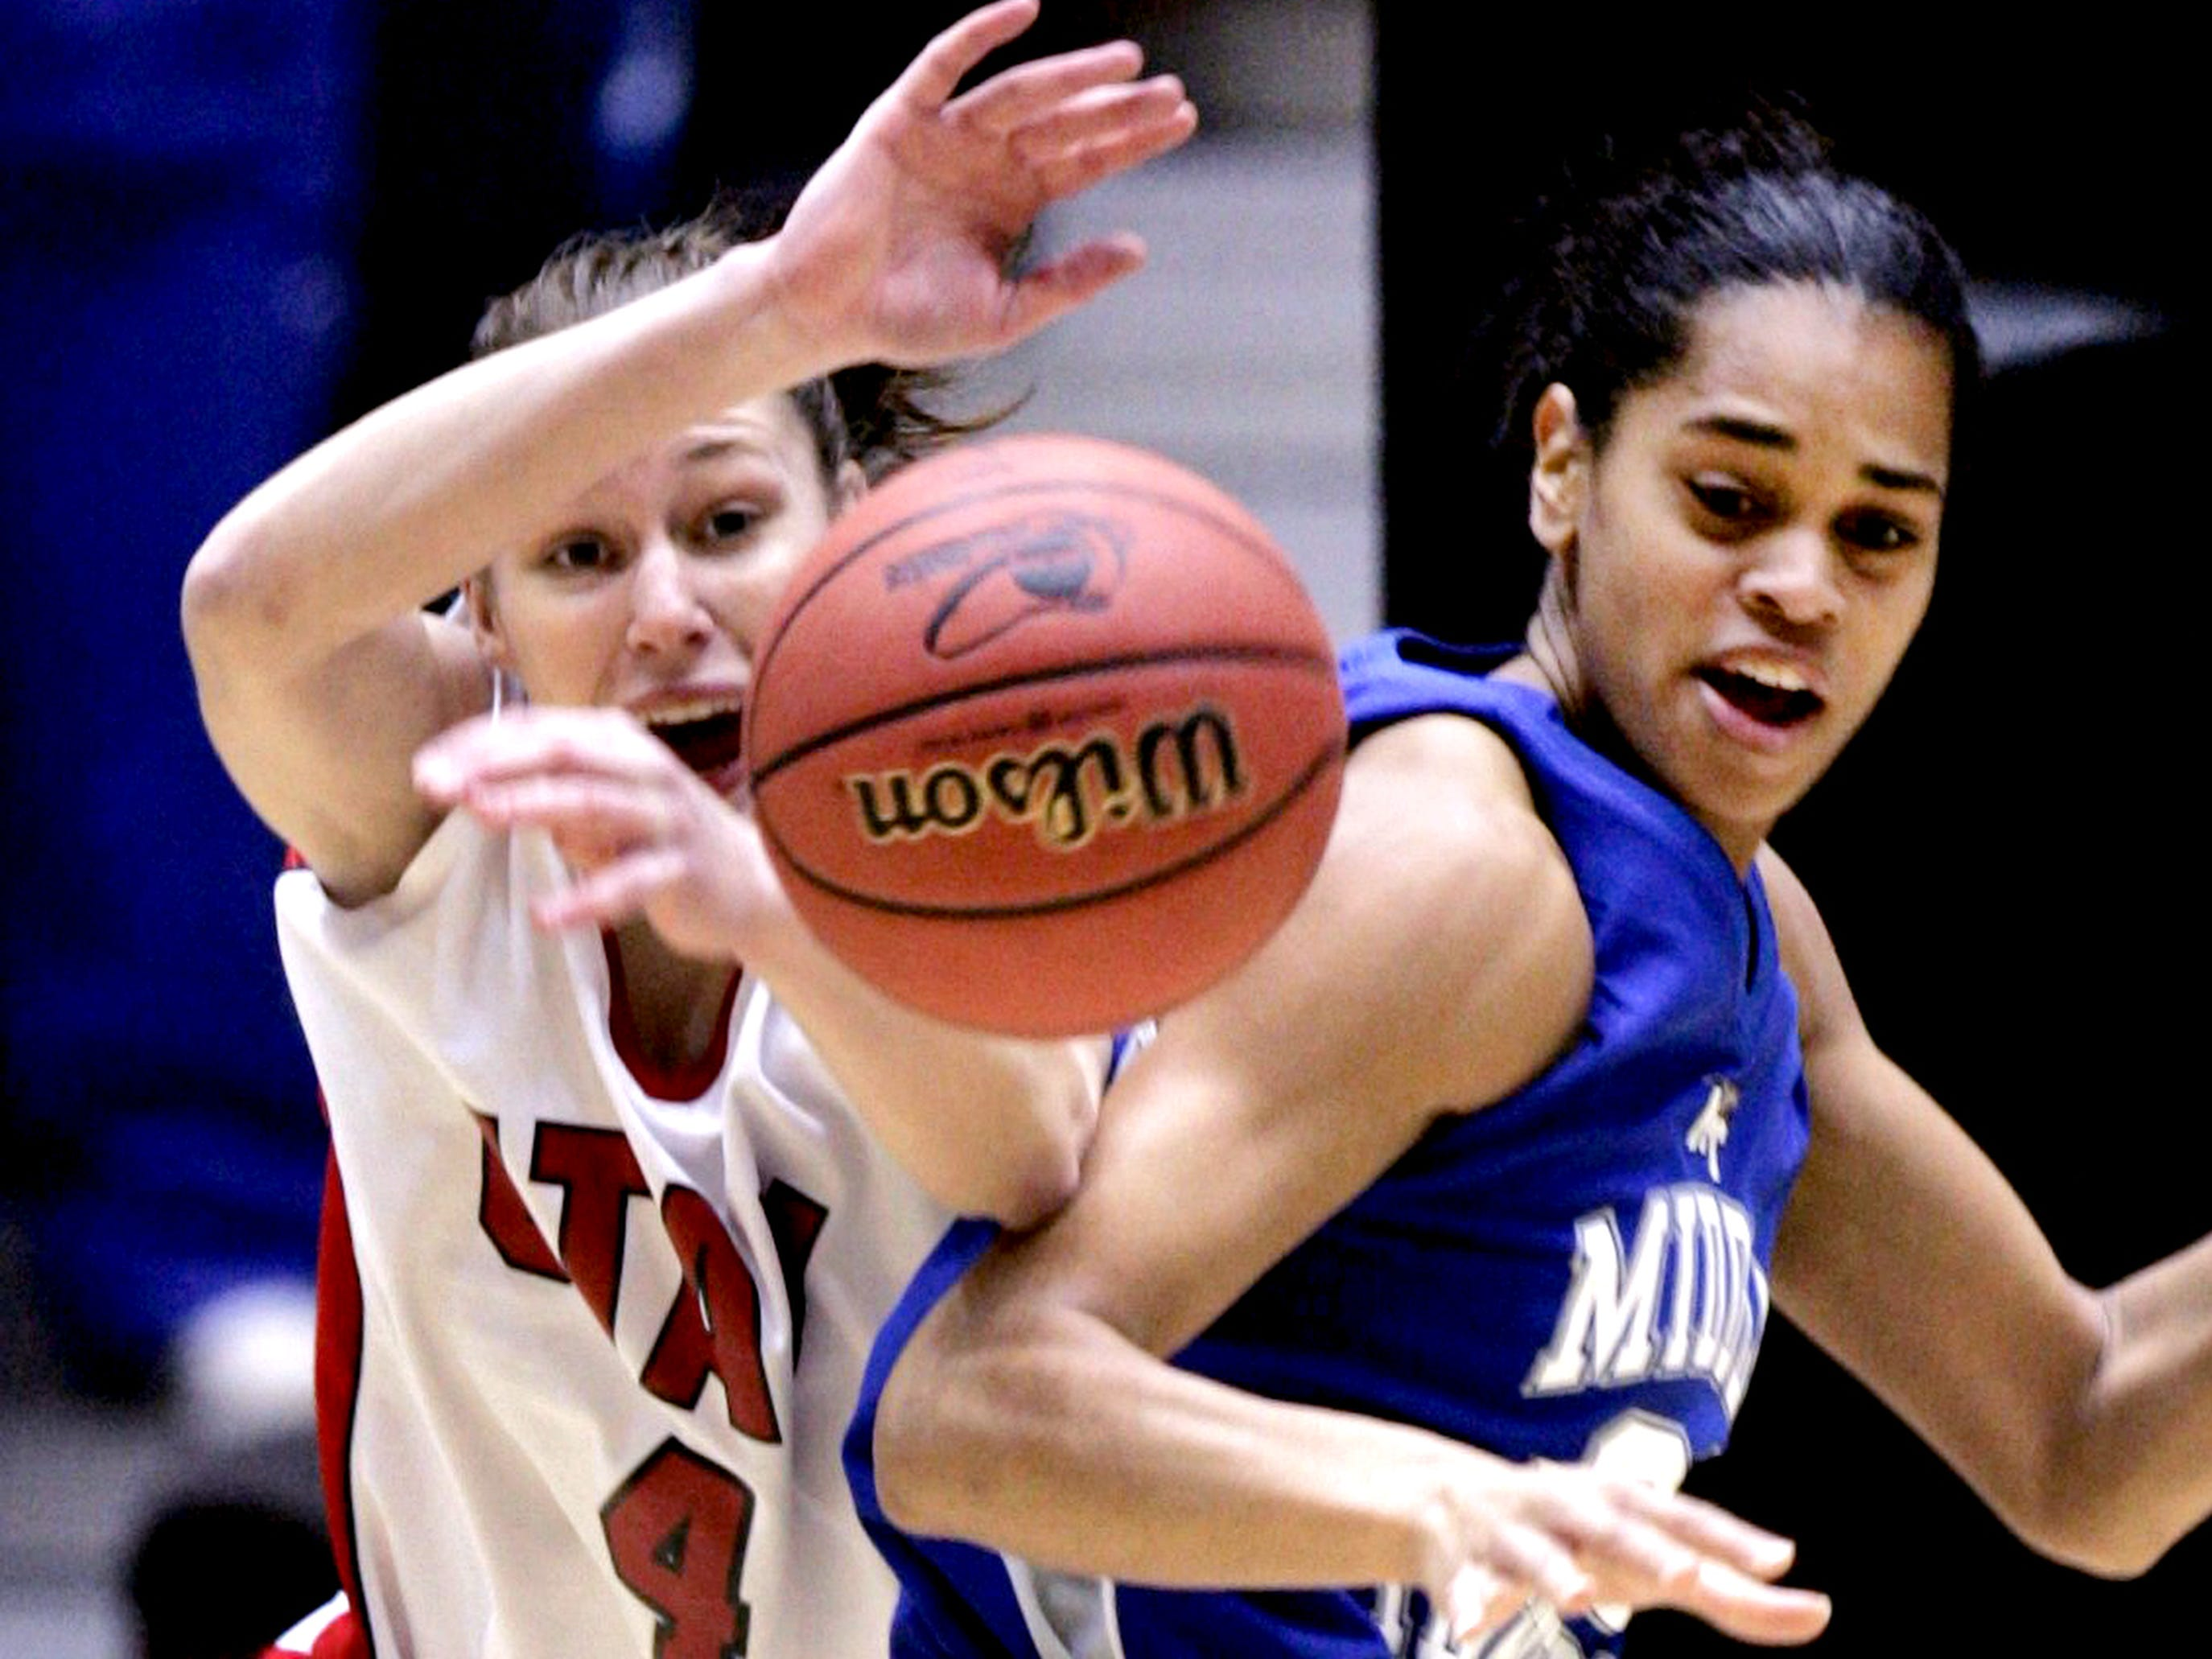 Utah's Kim Smith, left, battles Middle Tennessee's Tia Stovall for a loose ball during their first round NCAA Tournament basketball game in Tucson, Ariz., Saturday, March 18, 2006.